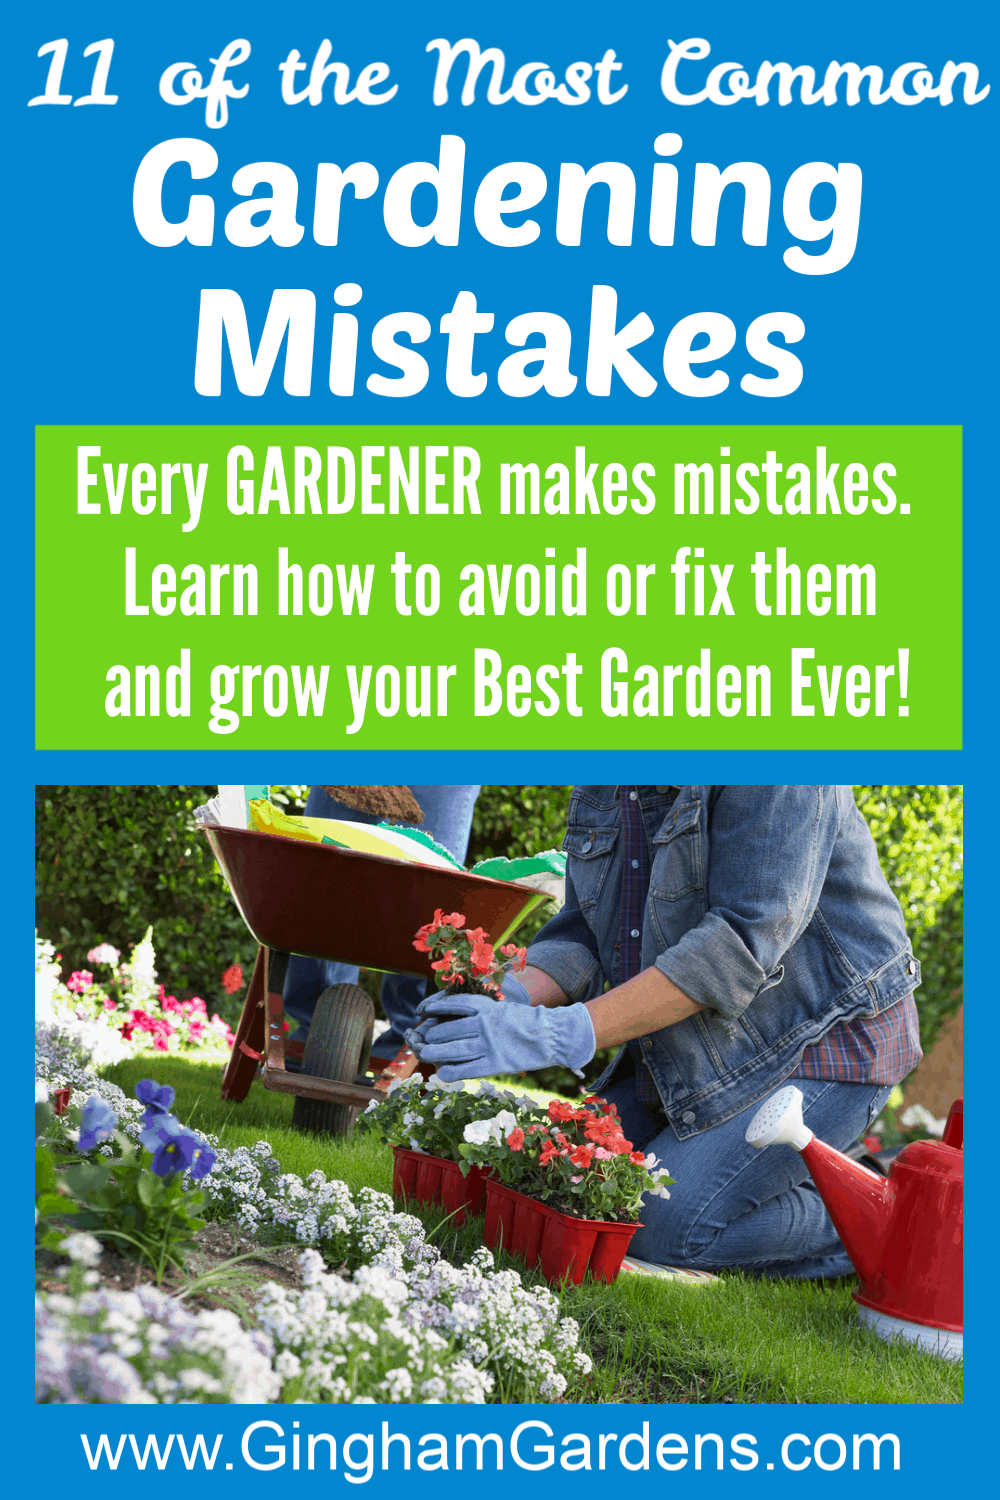 Image of a Gardener planting flowers with text overlay - 11 of the Most Common Flower Gardening Mistakes